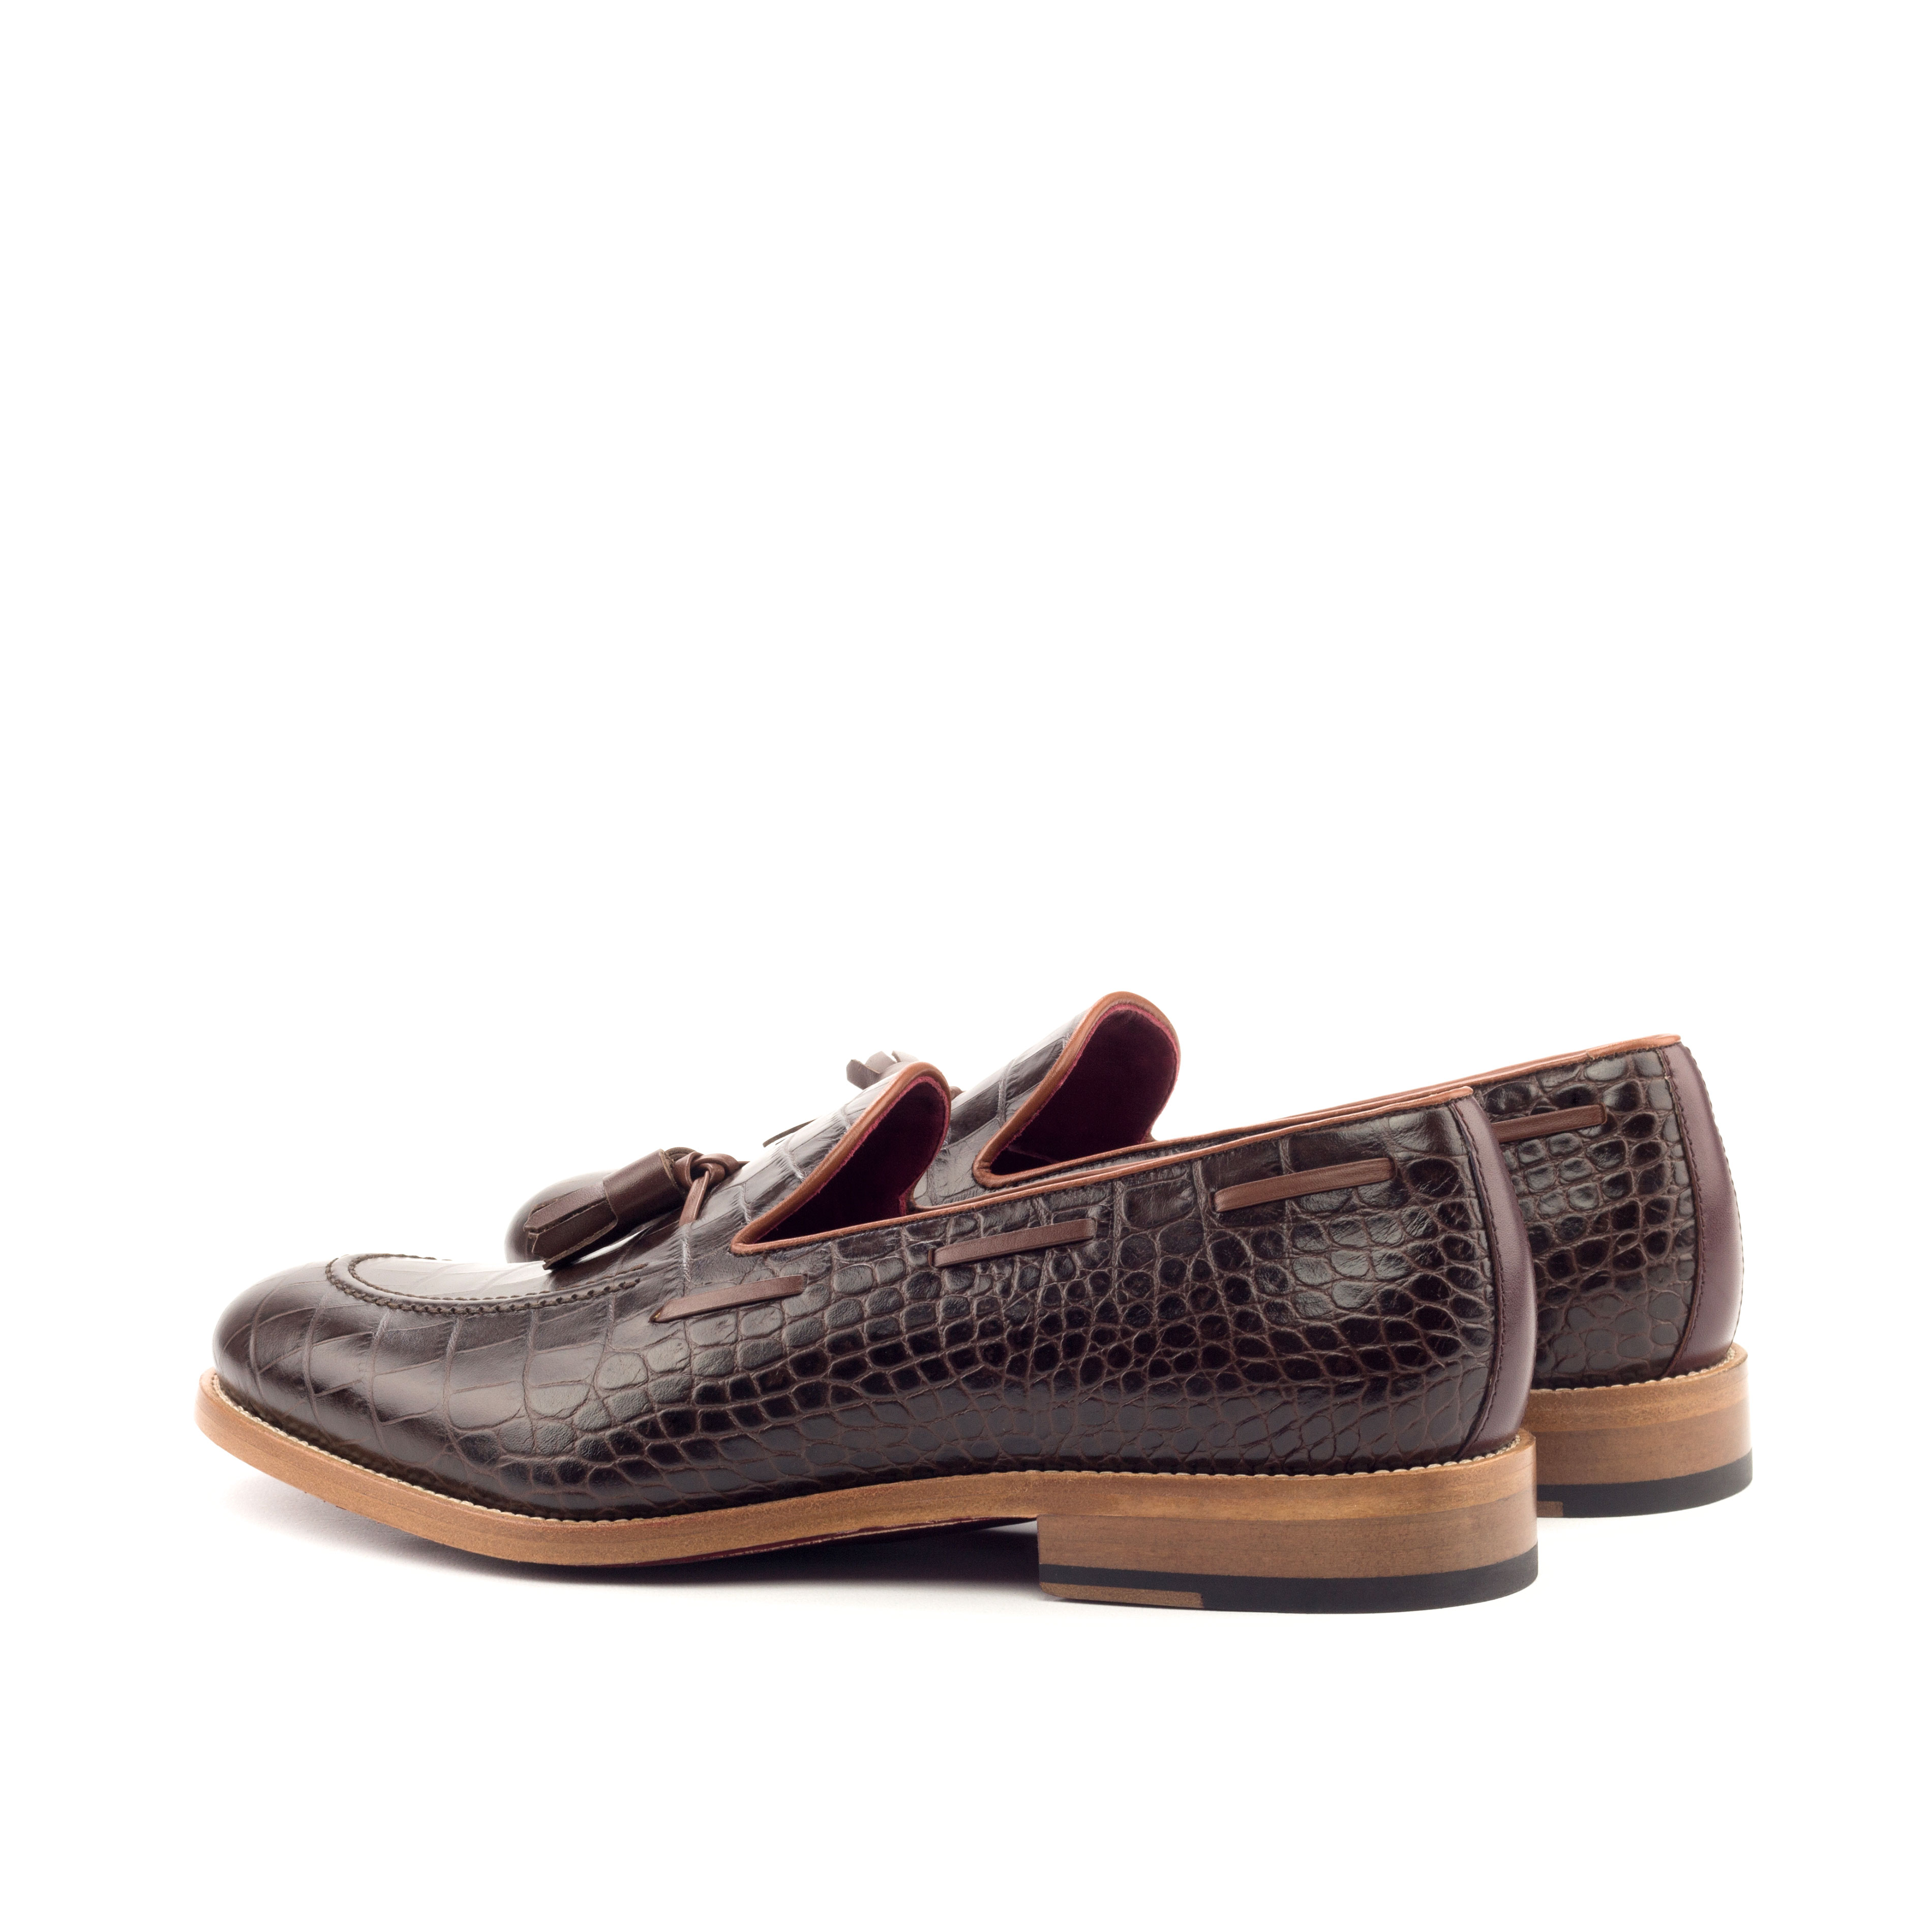 husky smith huskandsmith wedding man girl Loafer Tassels - Faux Croco Brown-Box Calf Burgundy And Cognac twitter instagram for sale sell